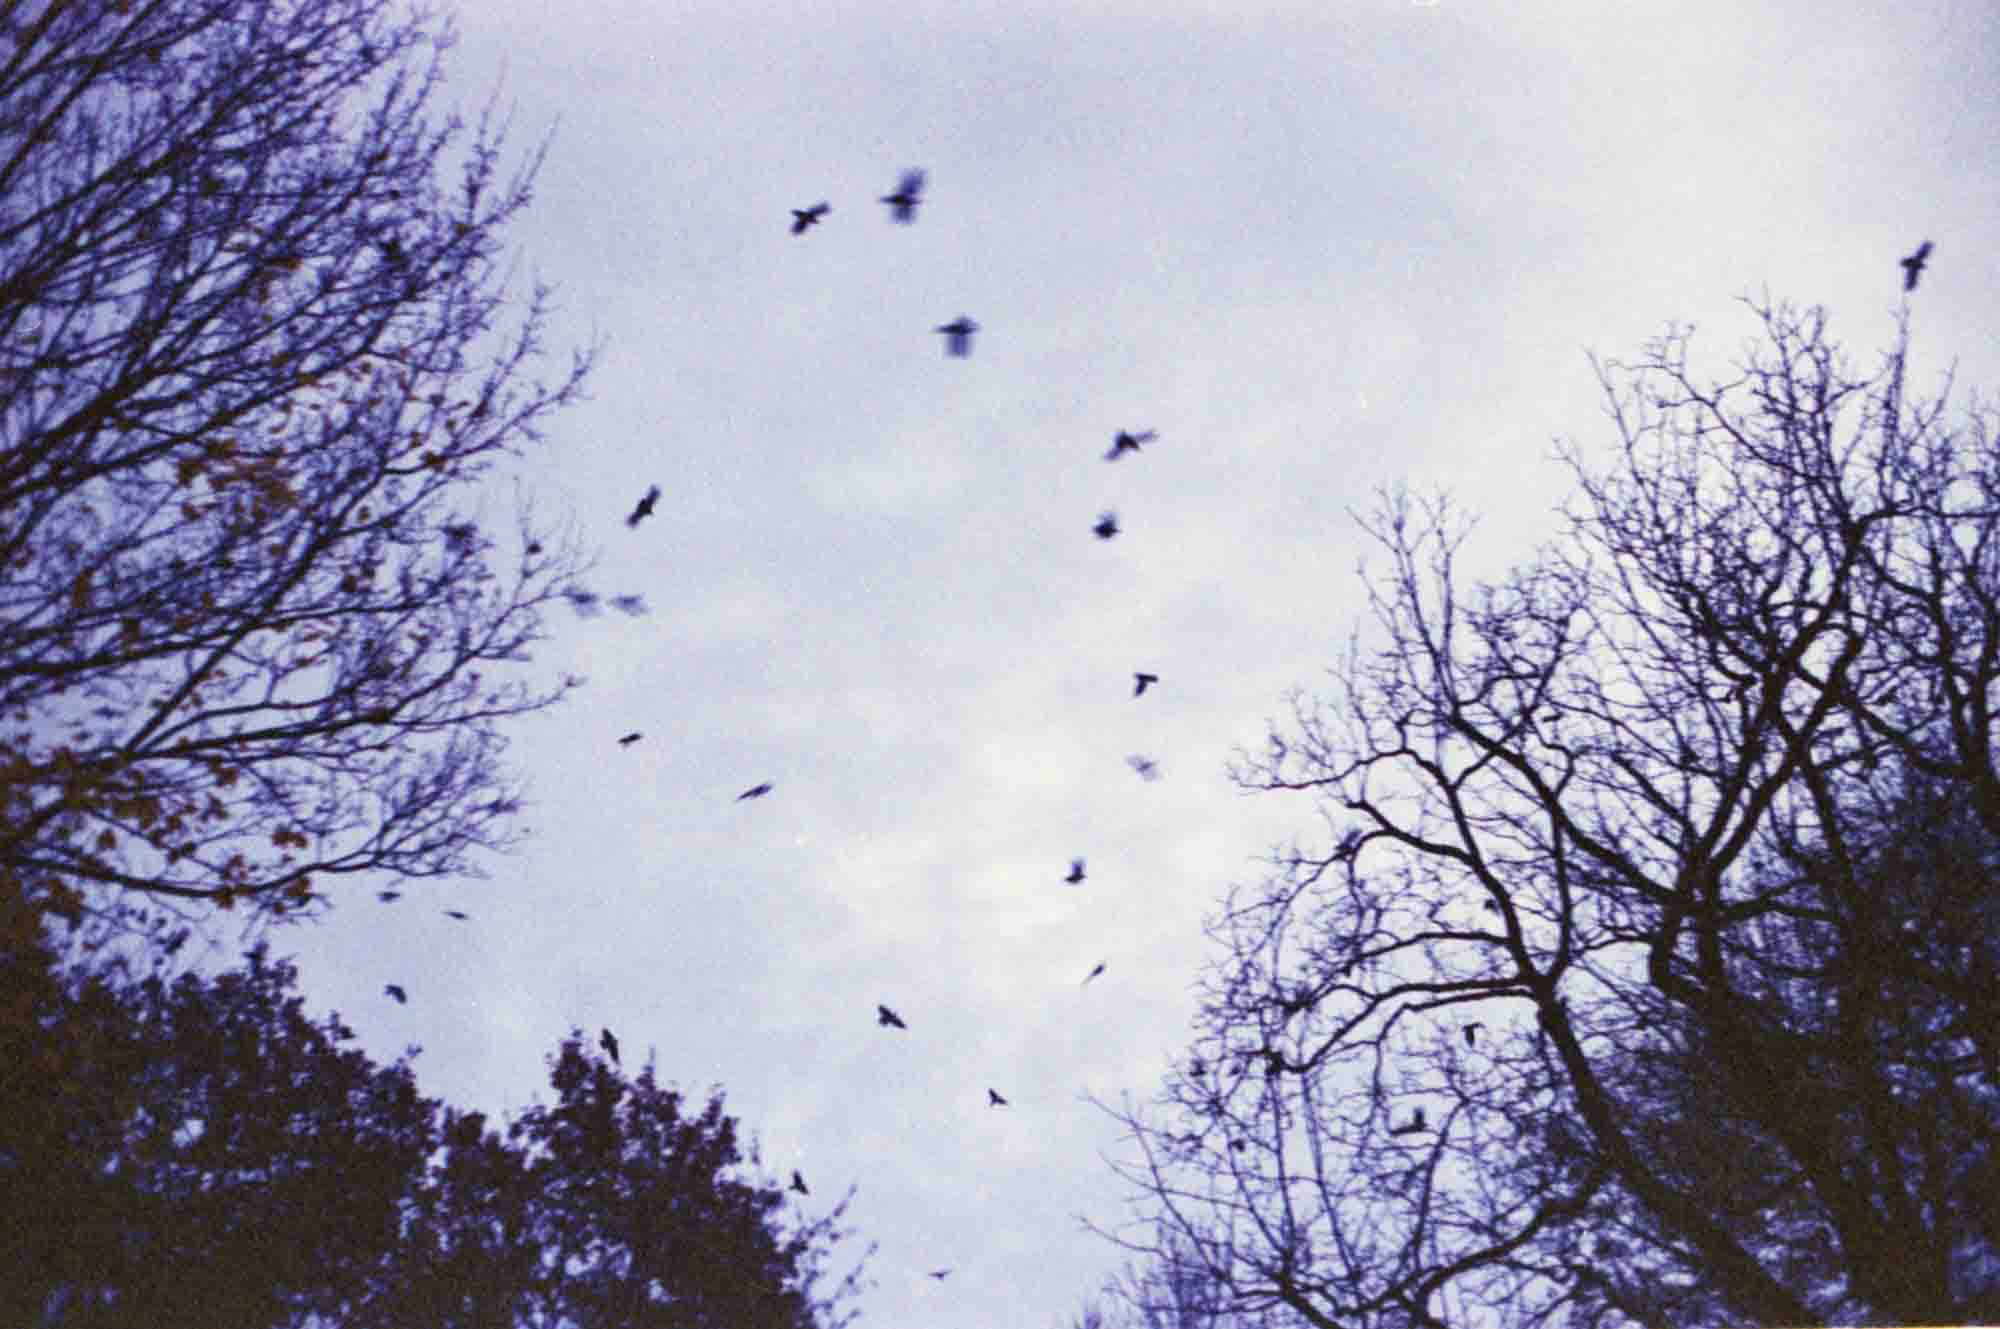 Flying birds | Pentax ME Super | Press Color 200 expired 10/2003